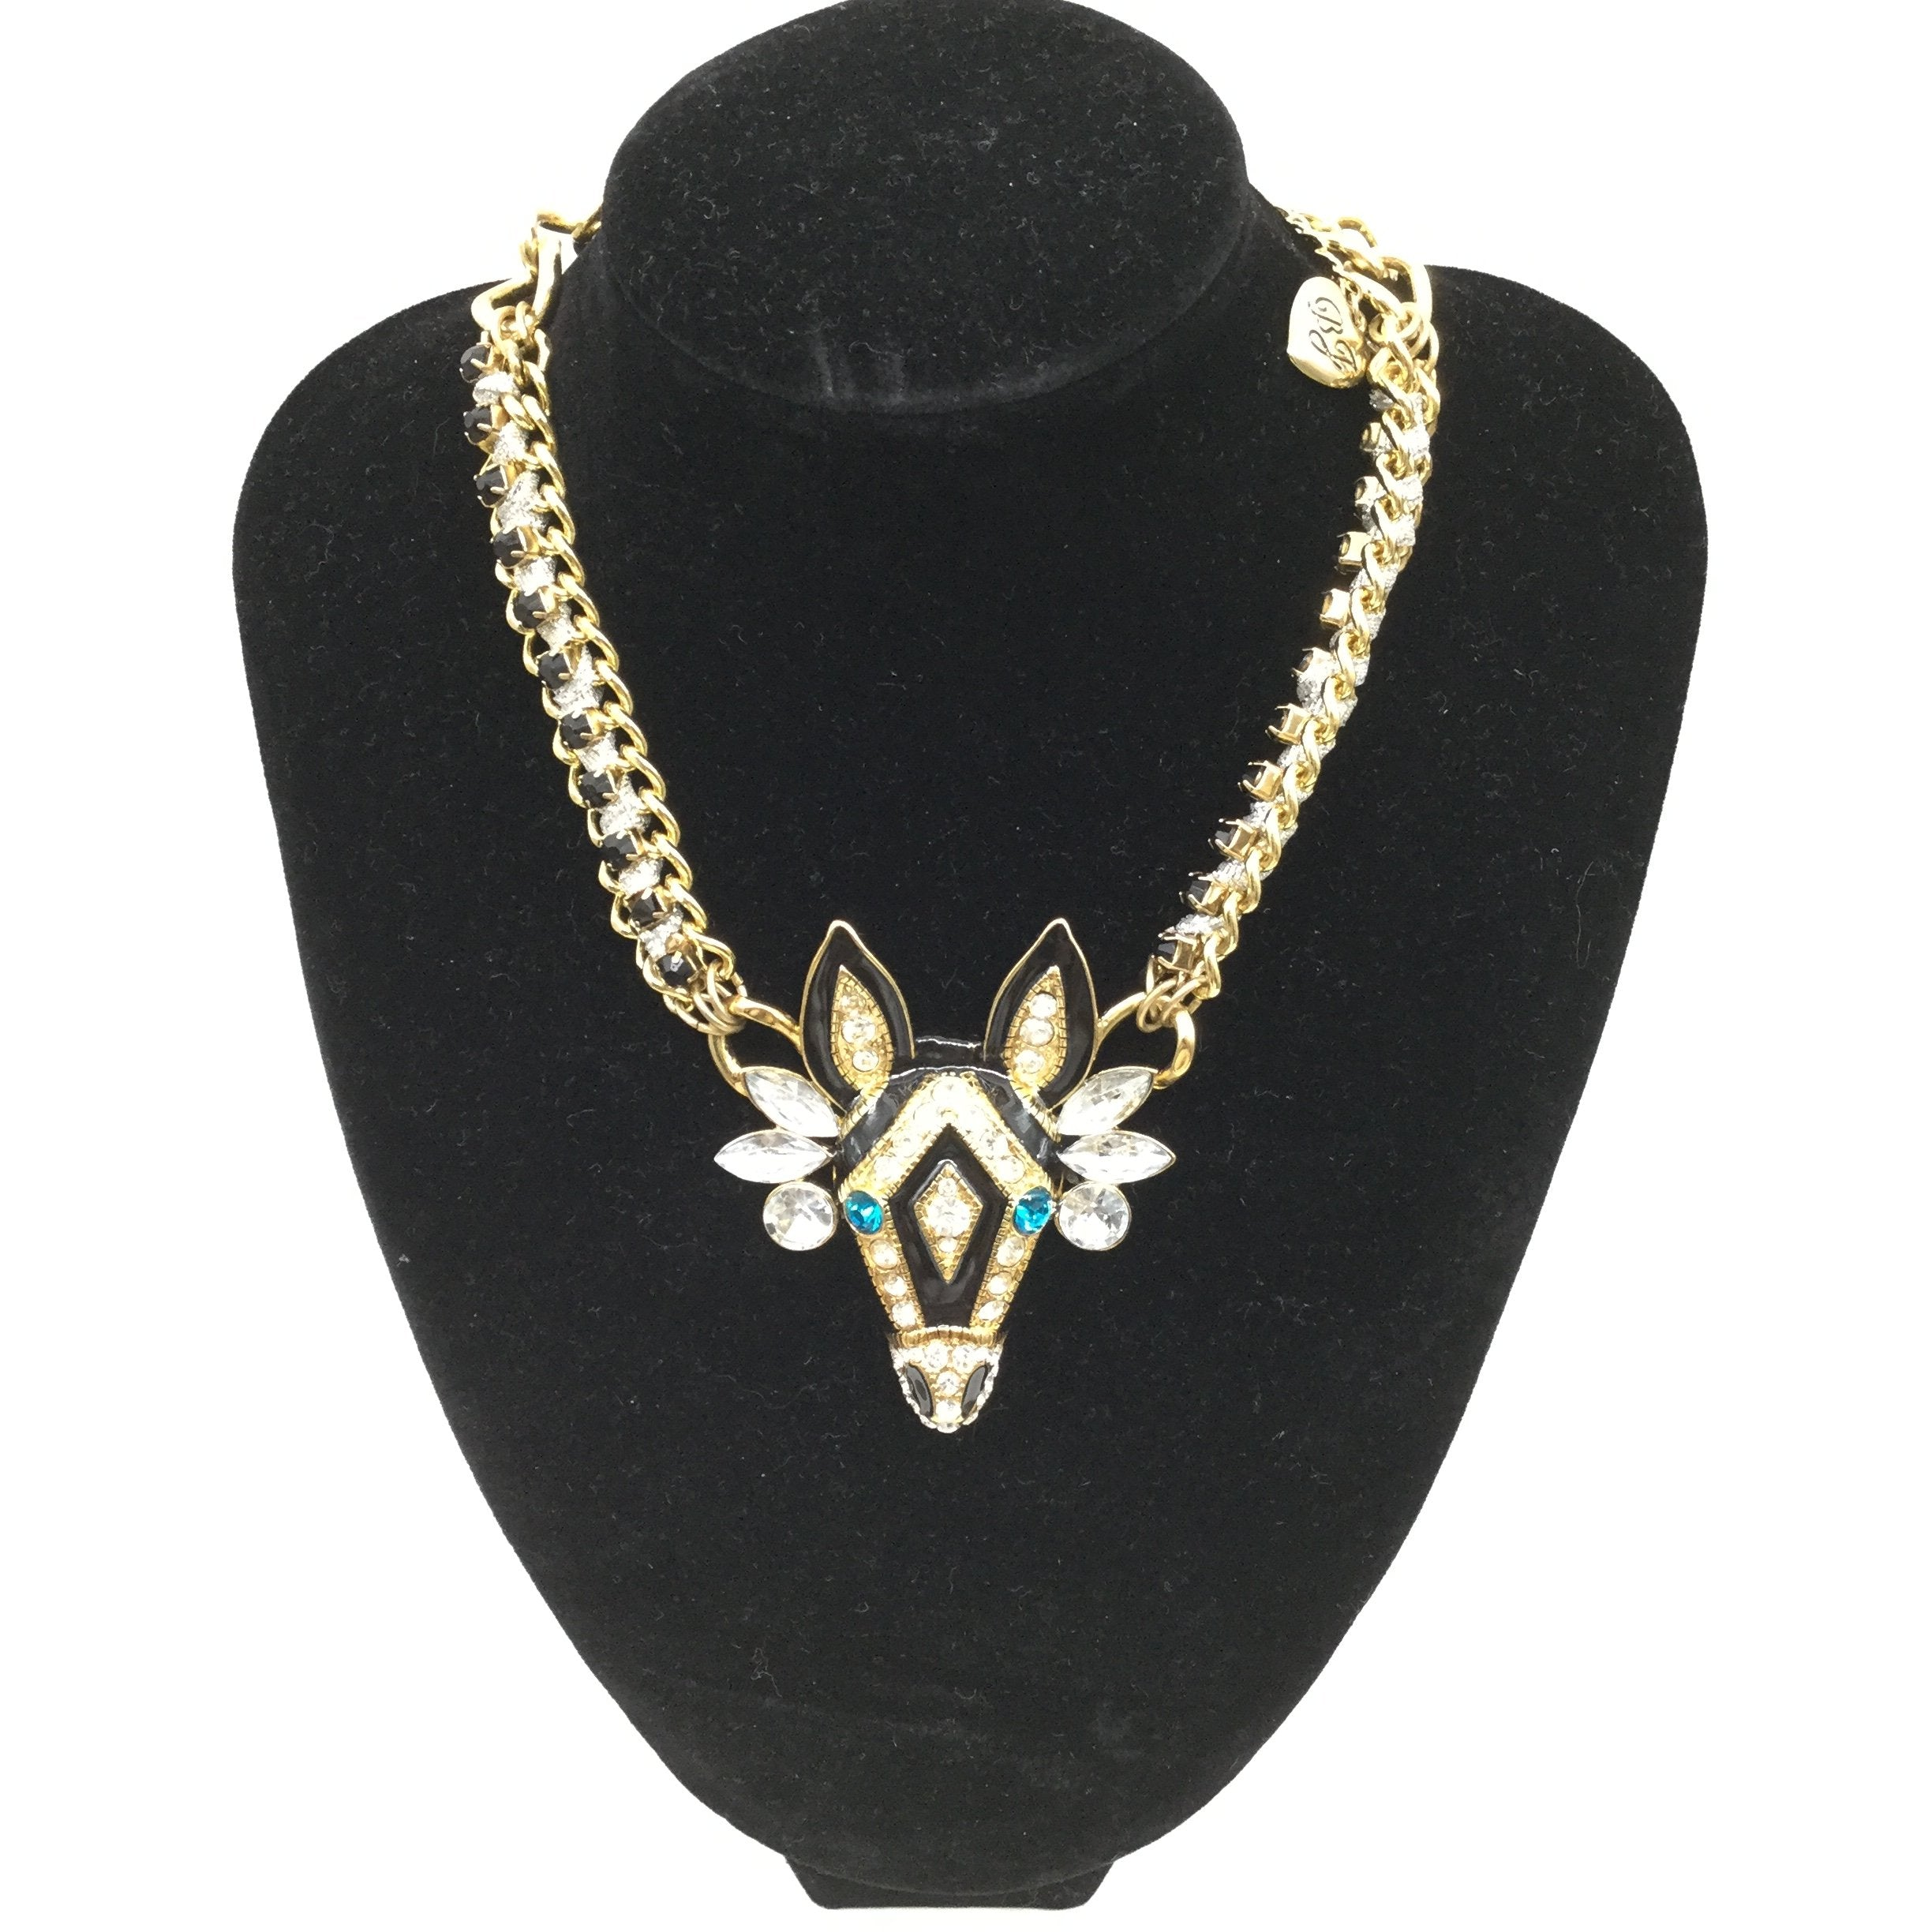 BETSY JOHNSON ZEBRA NECKLACE - <P>BJ ZEBRA NECKLACE. HAS MATCHING BRACELET ONLINE. ON EBAY FOR $49.99! GOLD-TONE.</P>